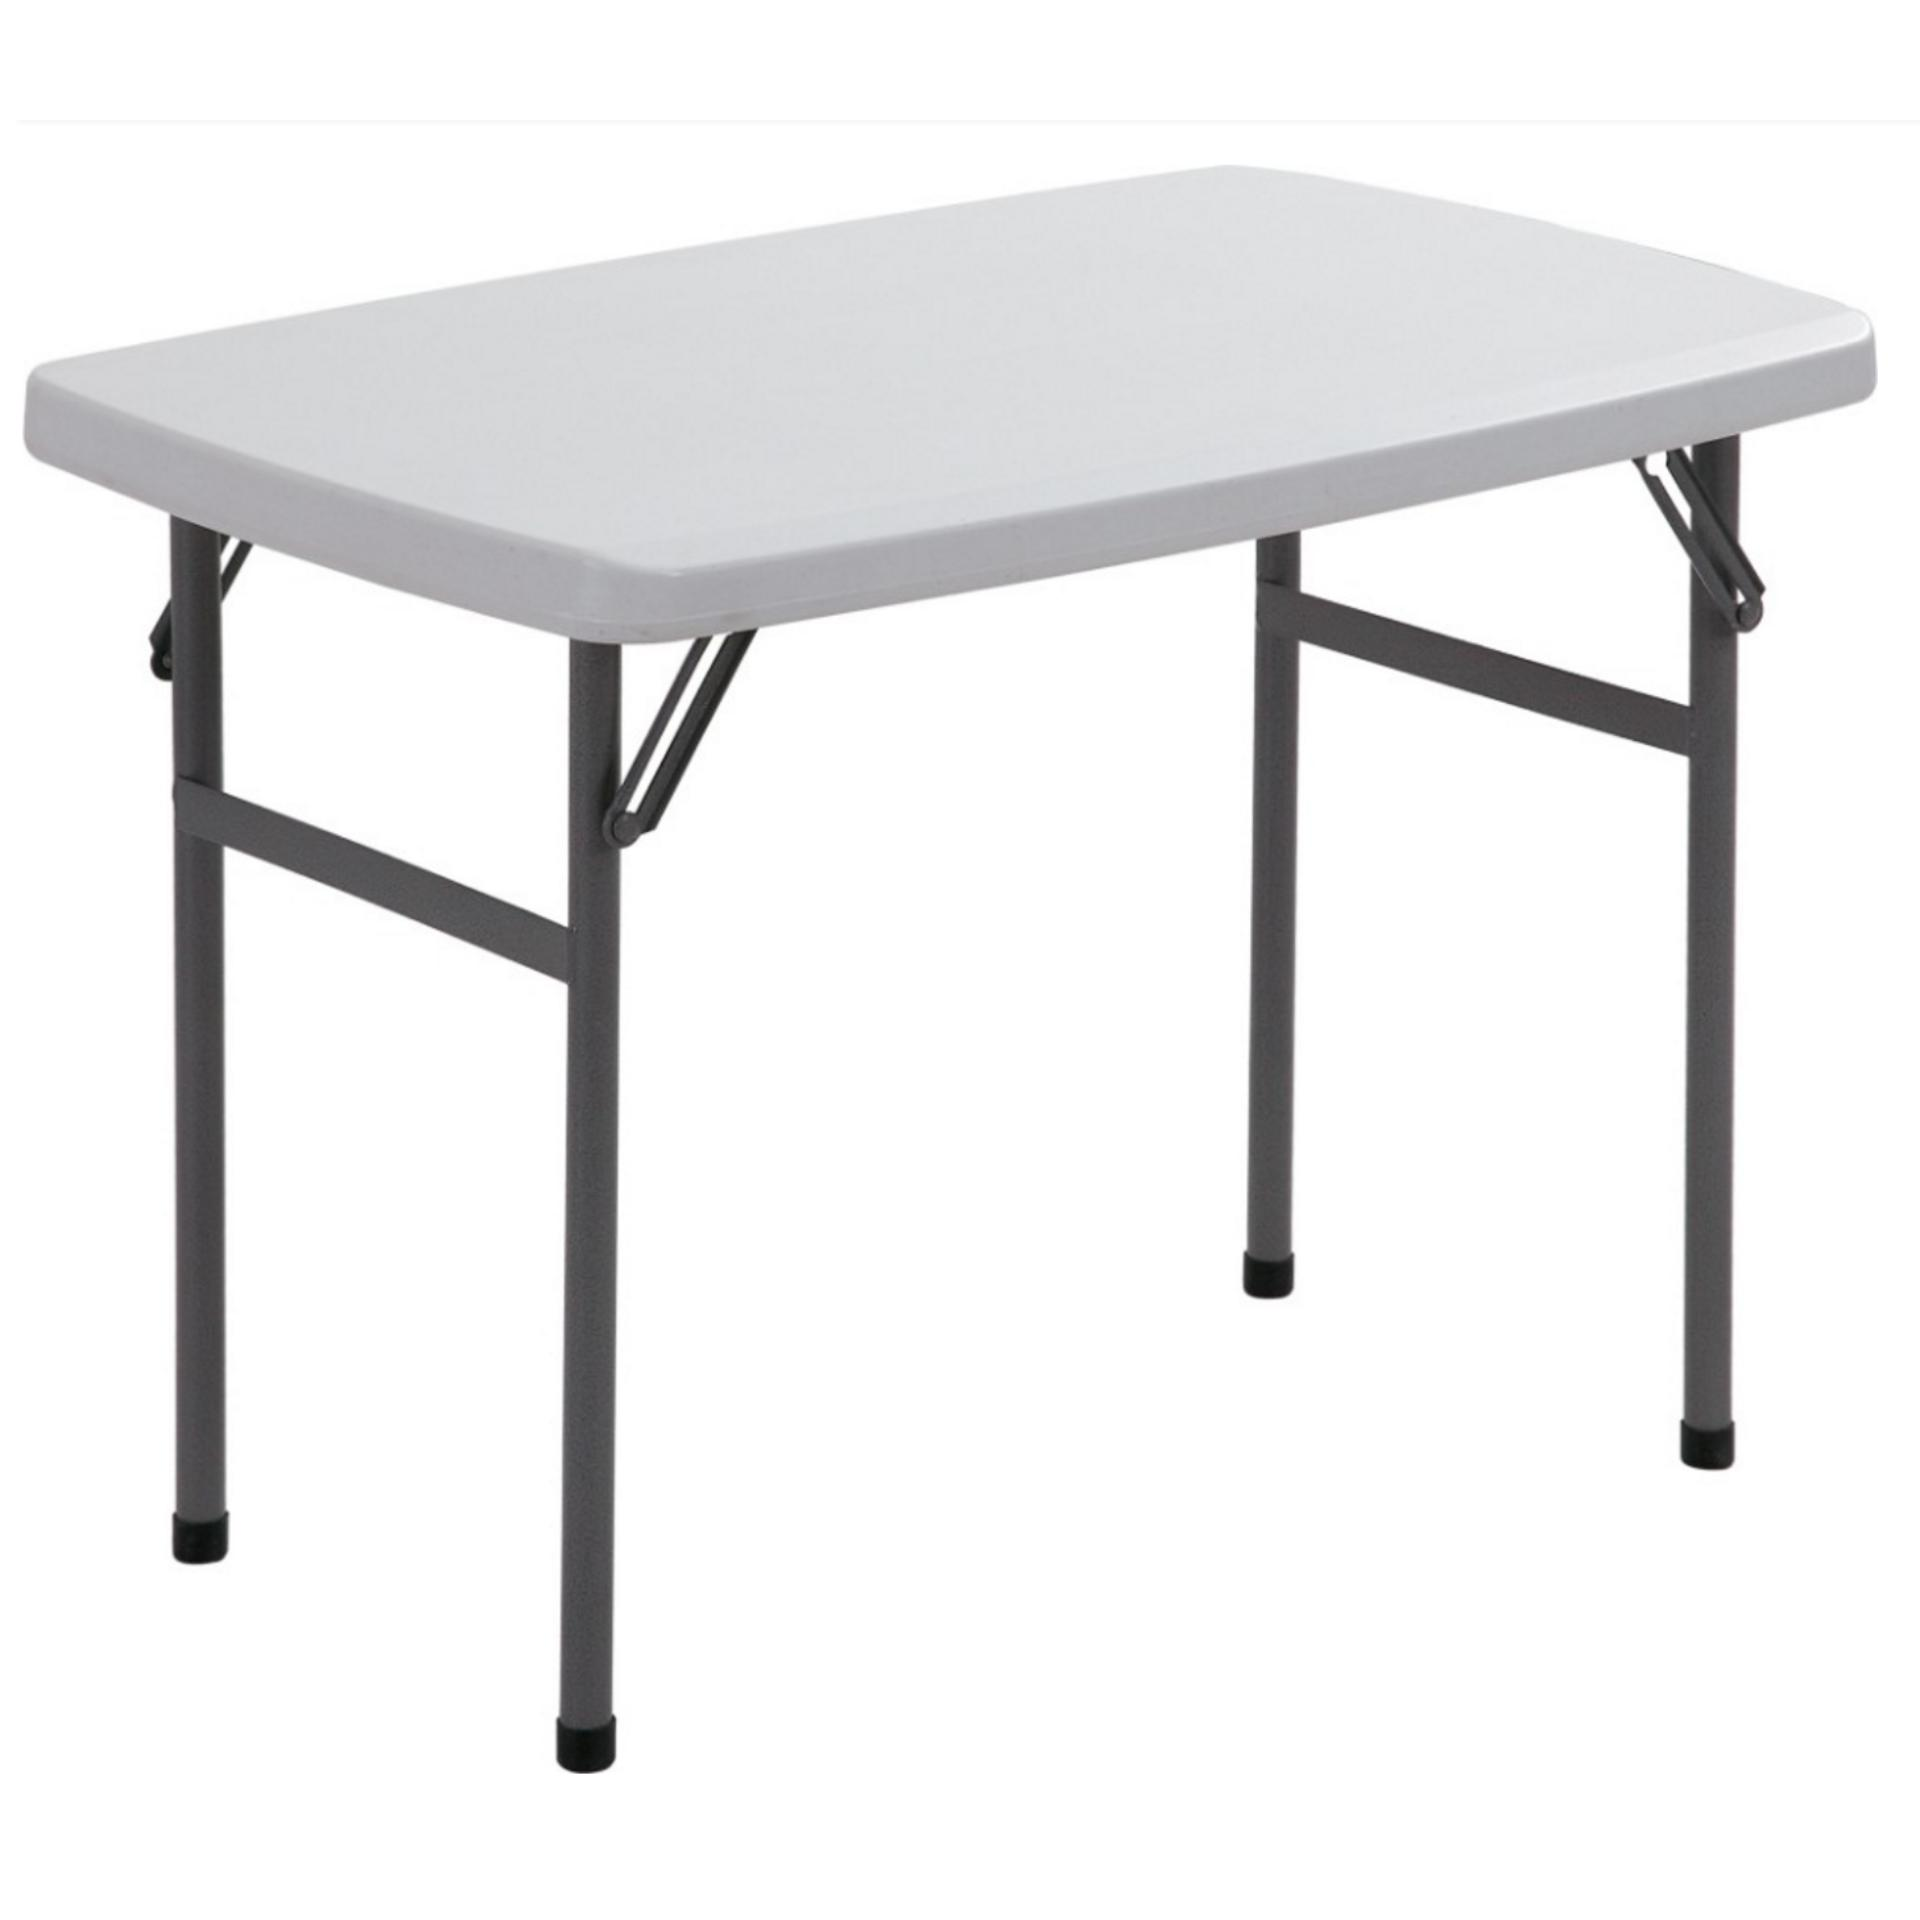 Primetime L30xw20x H23 Rectangular Solid Plastic Top Folding Outdoor Picnic Side Table (white) By Direct2u.